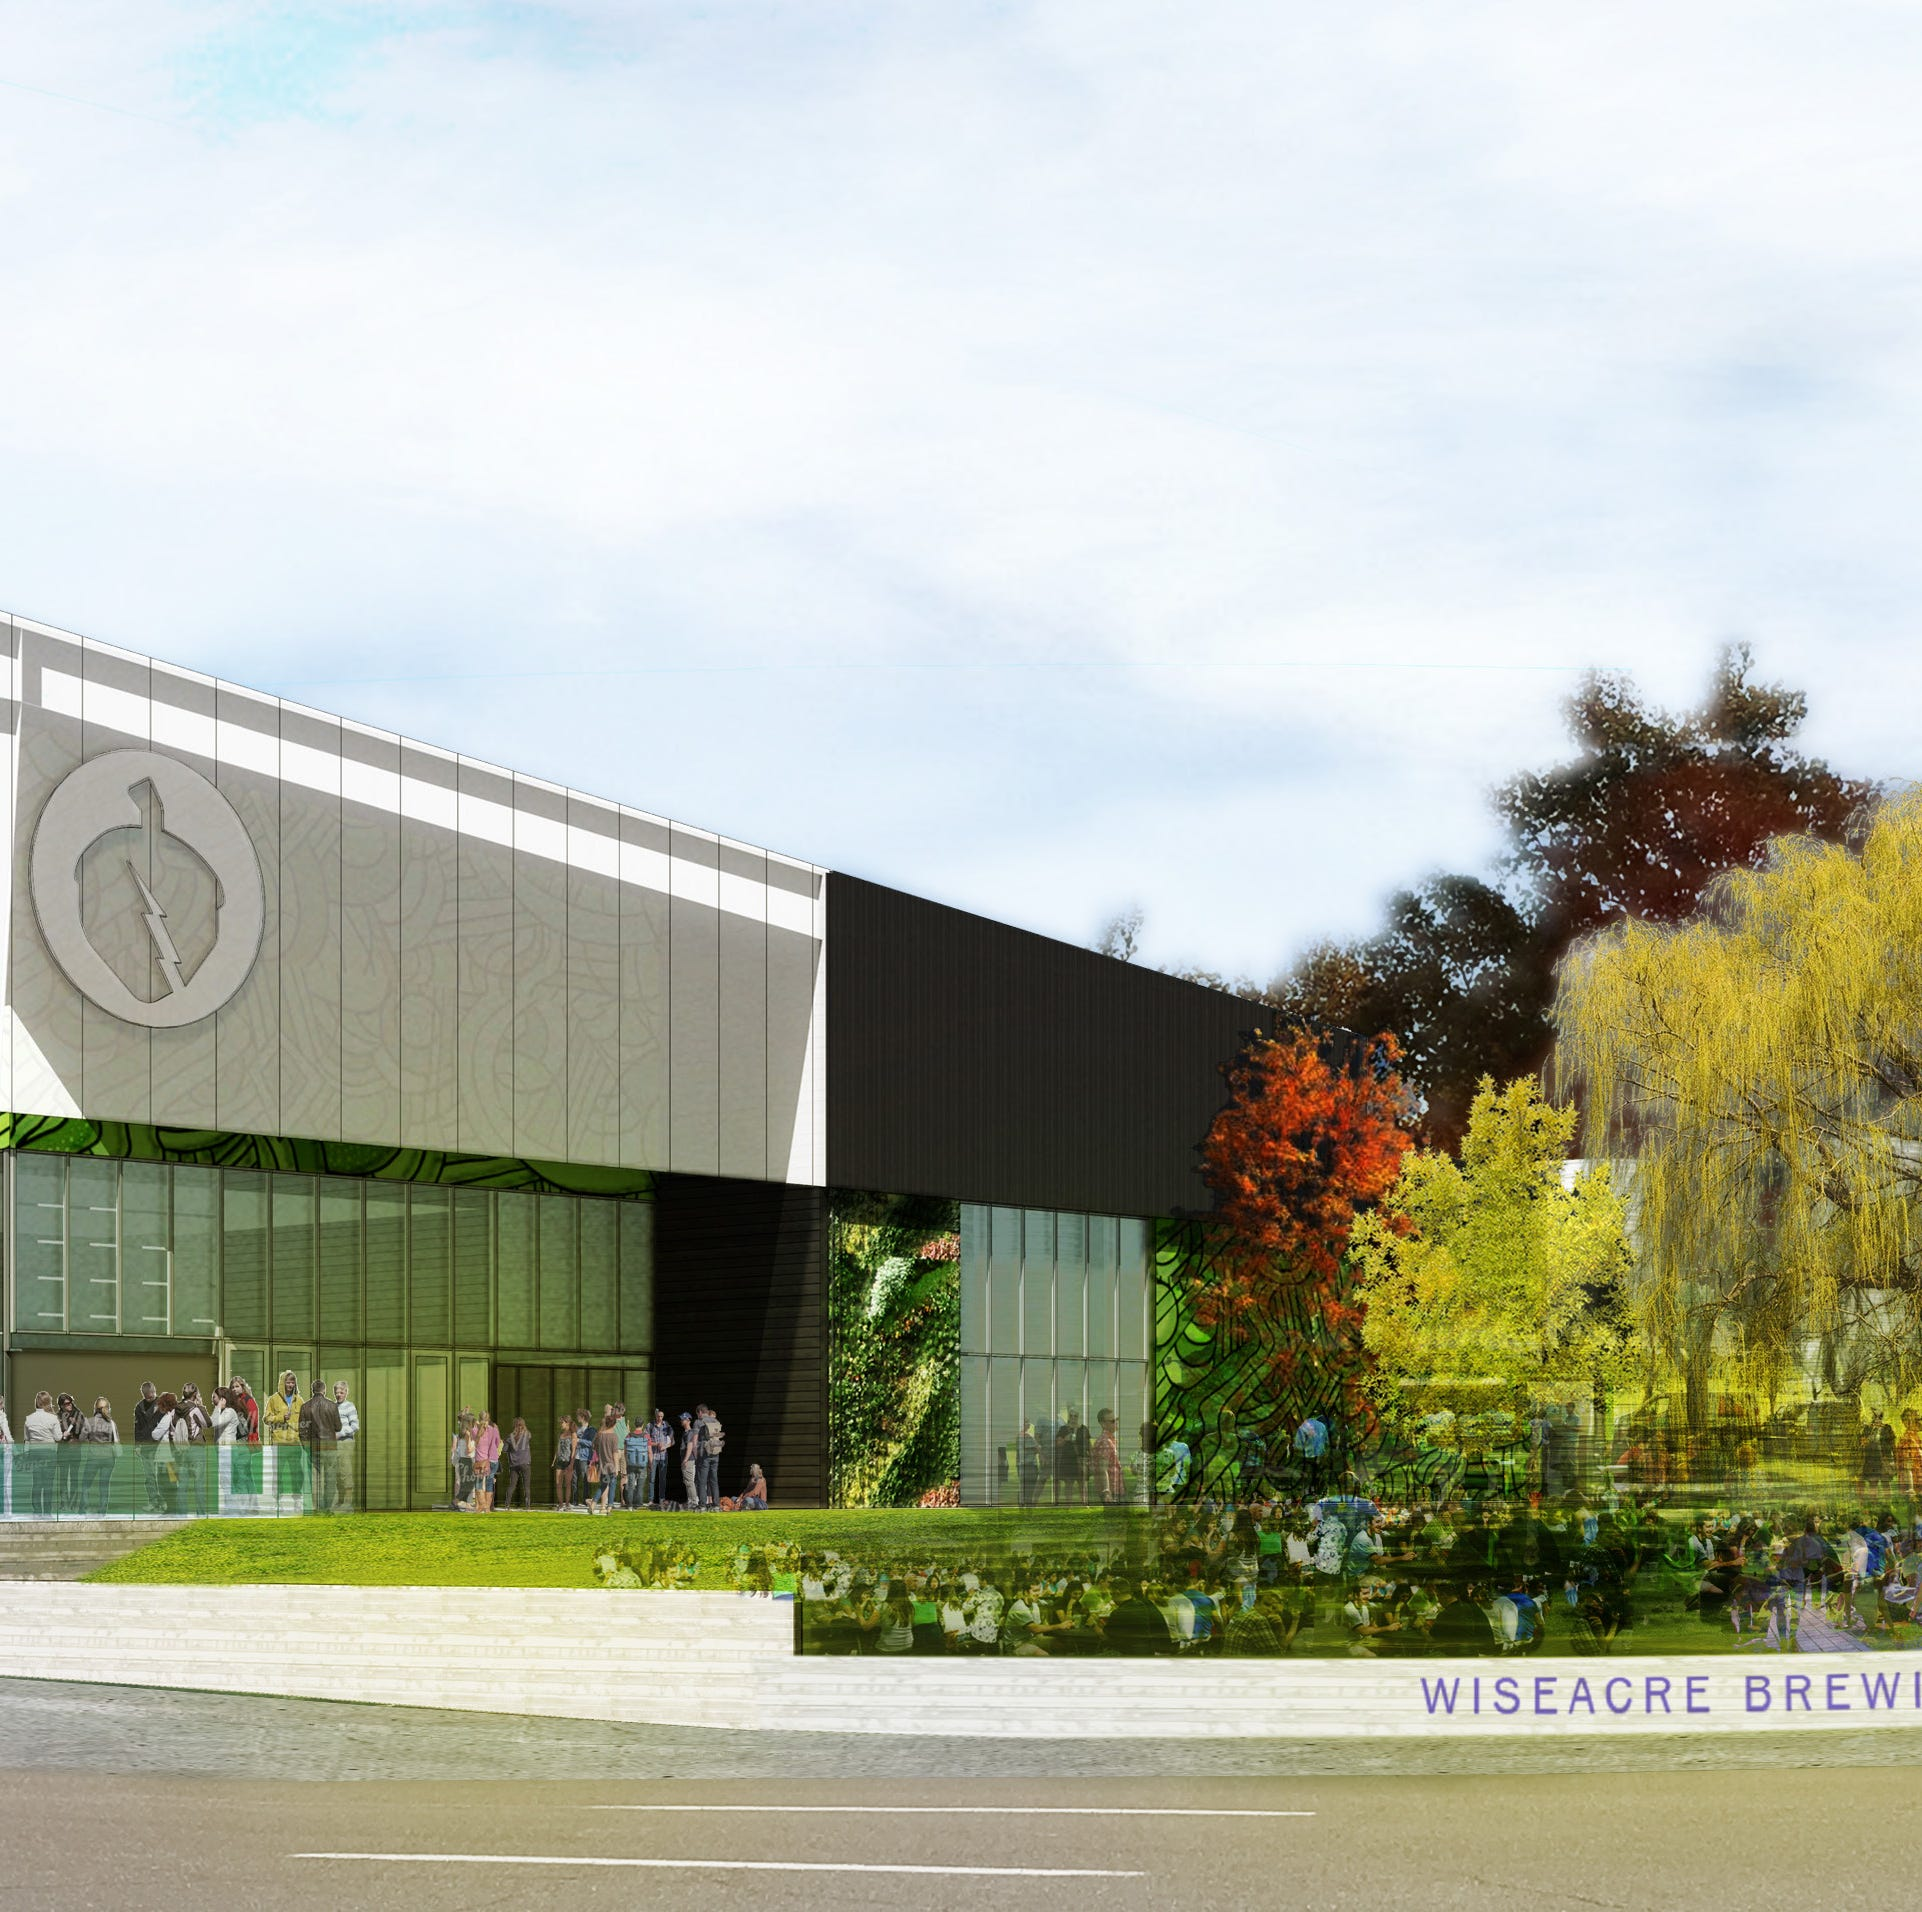 Here's what the new Downtown Wiseacre brewery will likely look like